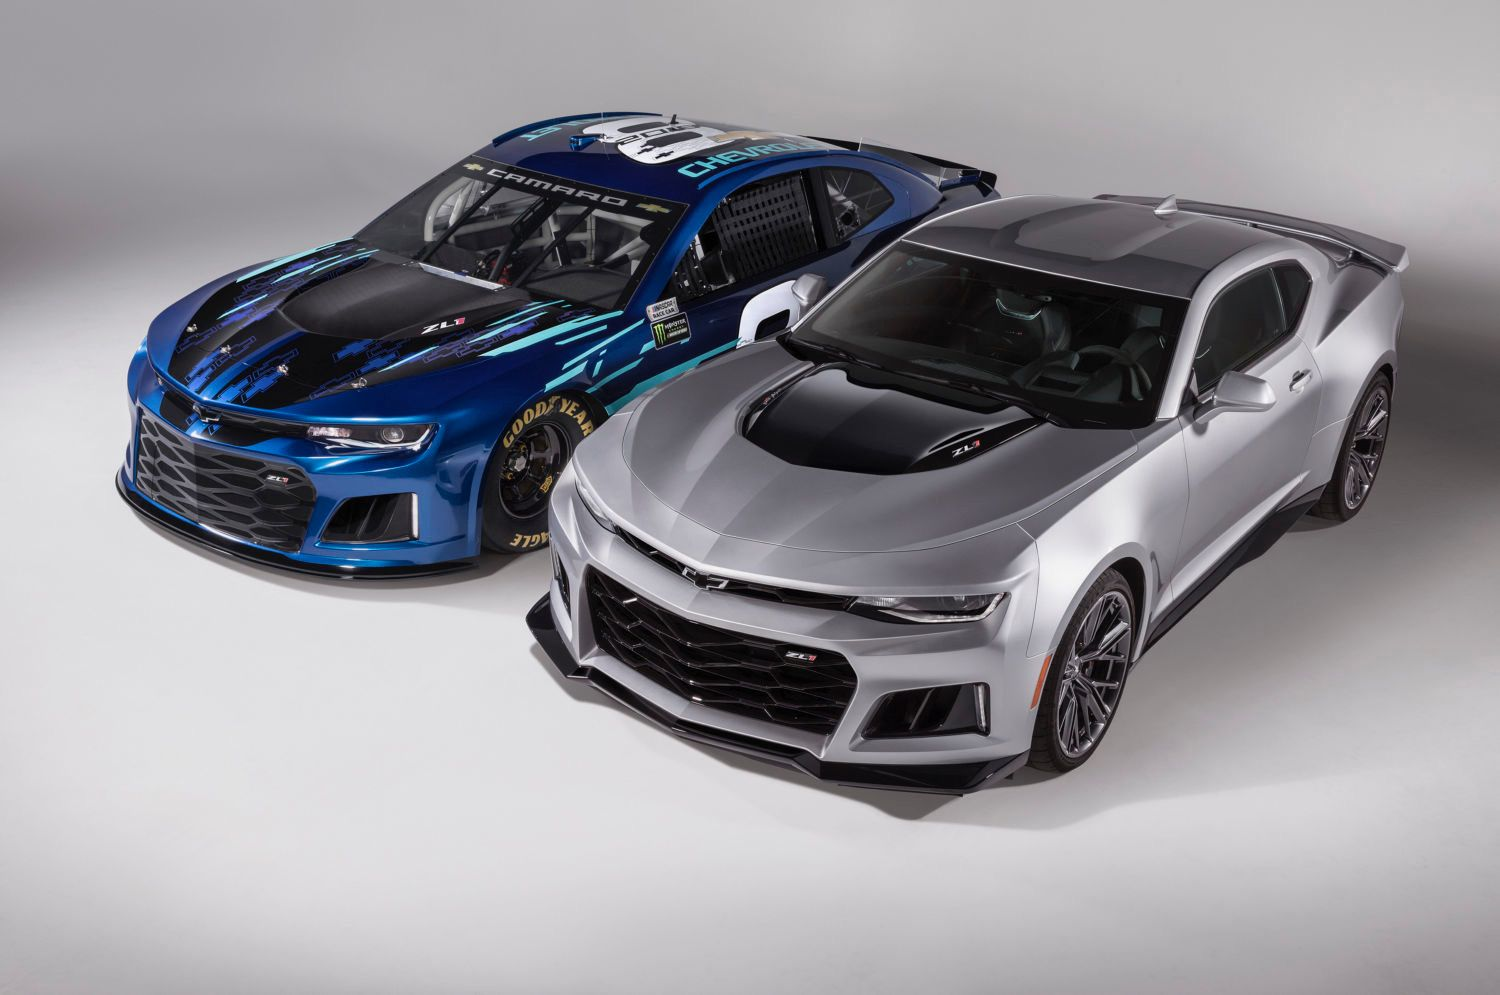 Chevrolet Unveiled Its 2018 Monster Energy Nascar Cup Series Car Thursday At Its Corporate Headquarters In Detroit By Chevrolet Camaro Zl1 Camaro Zl1 Camaro